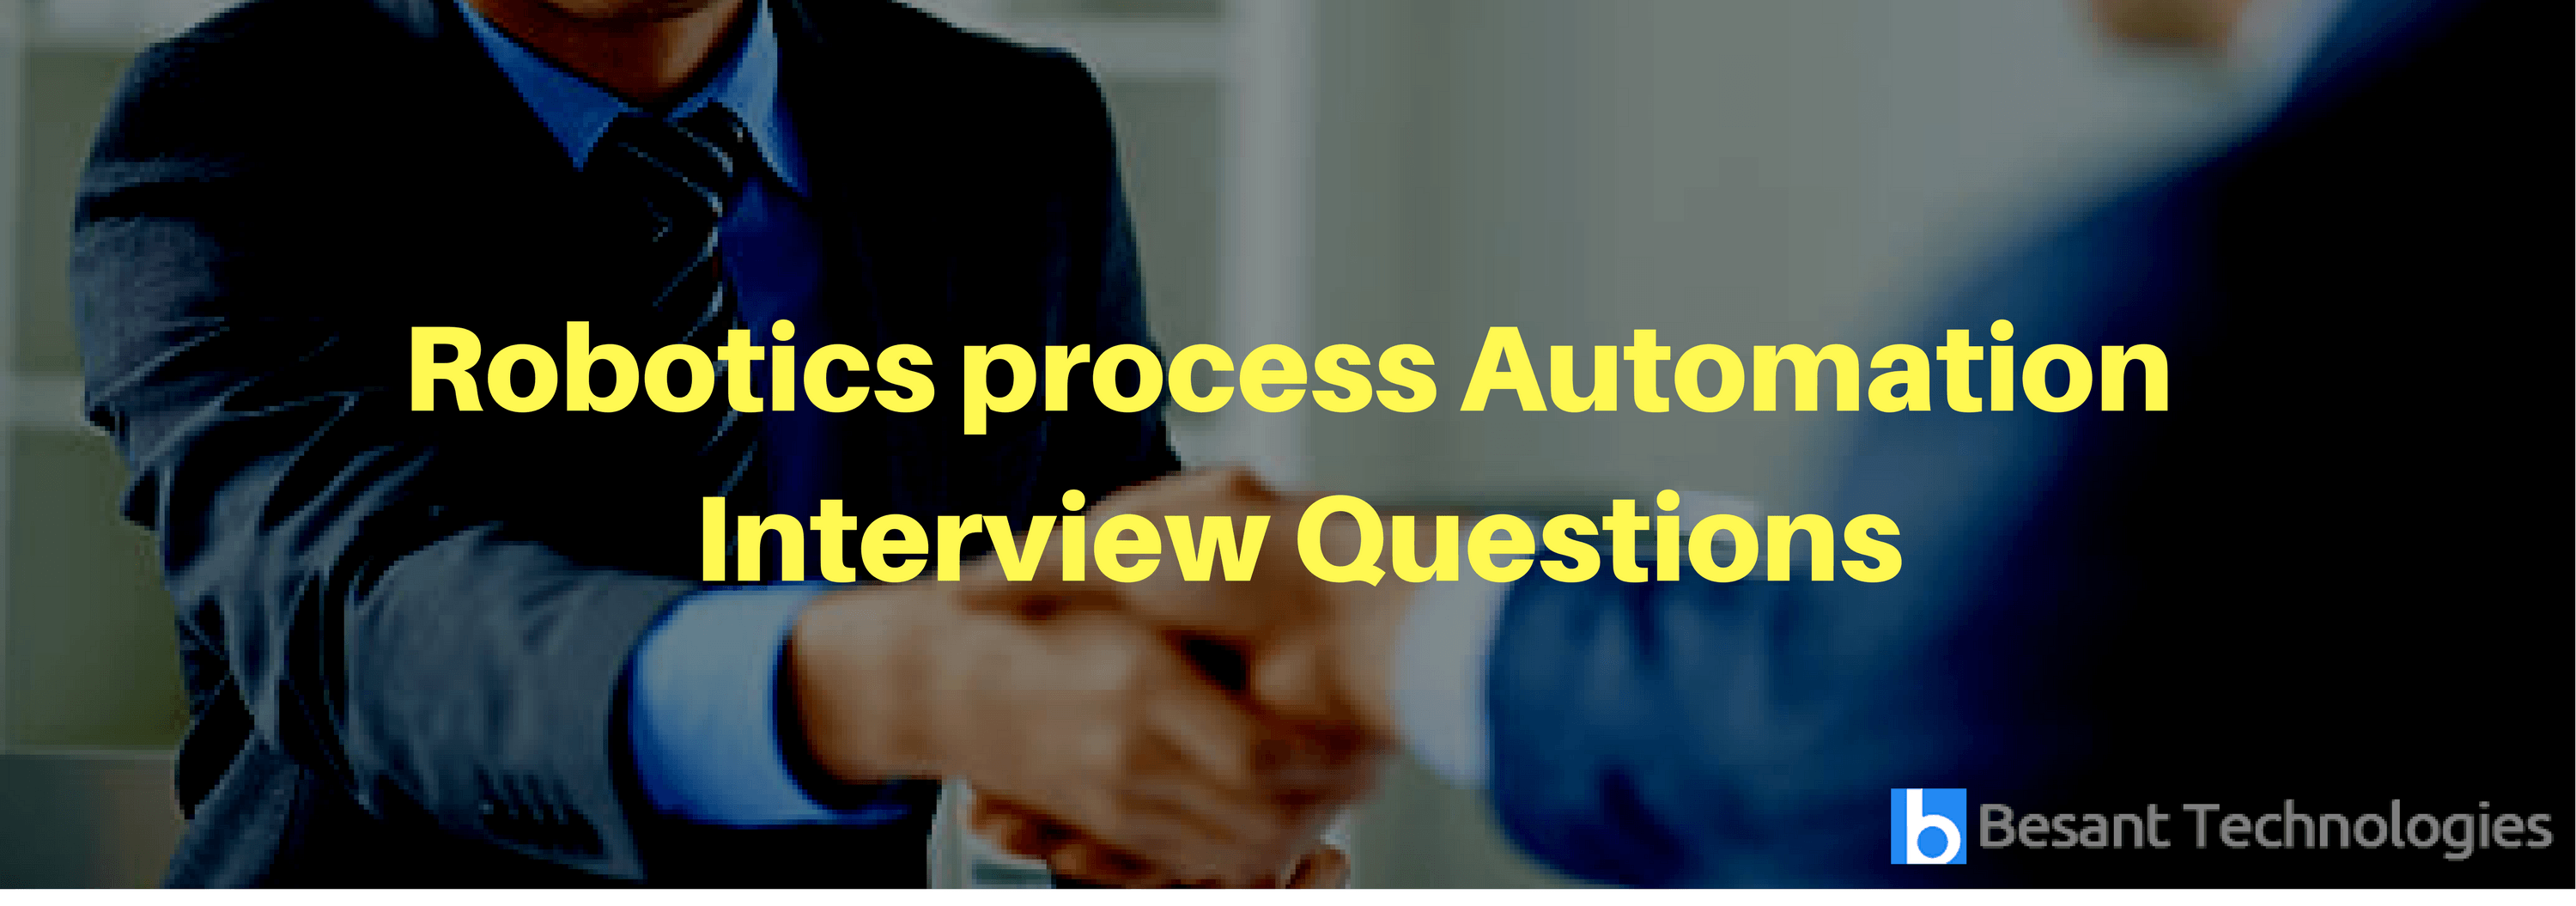 Latest Robotic Process Automation (RPA) Interview Questions & Answers